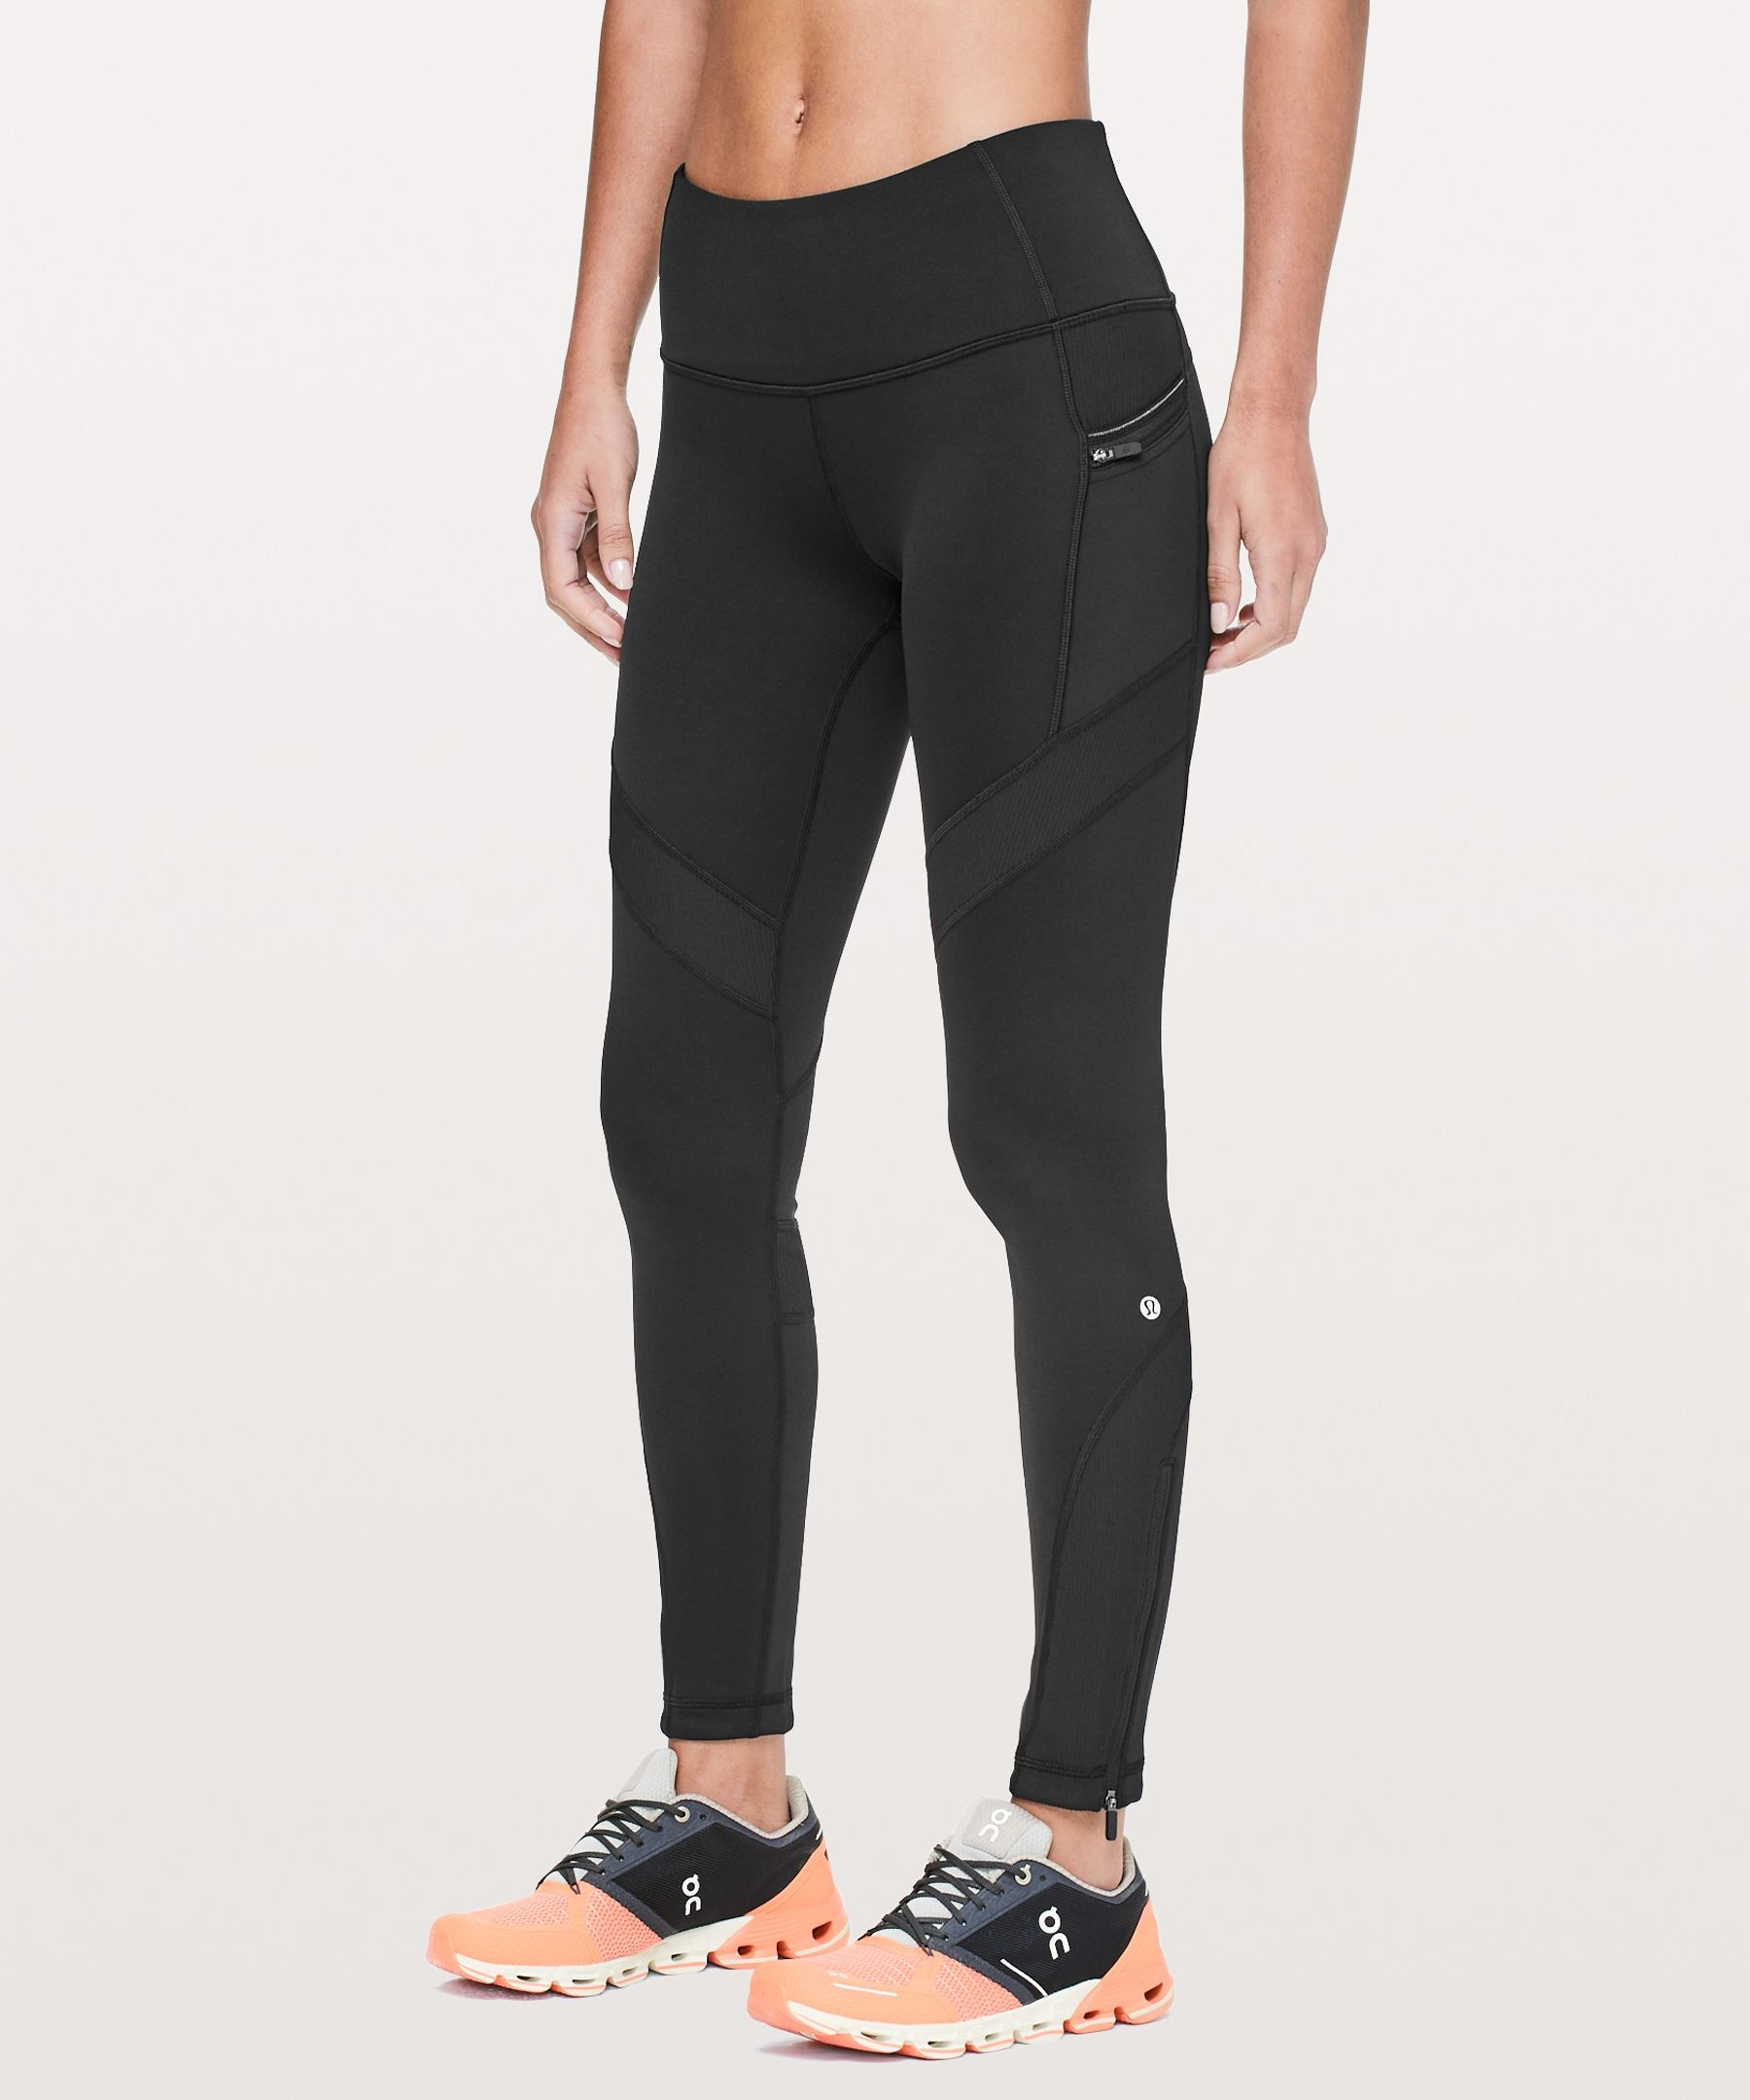 """6add4f4589cef Black keep the fleece tight 28"""" size 6 